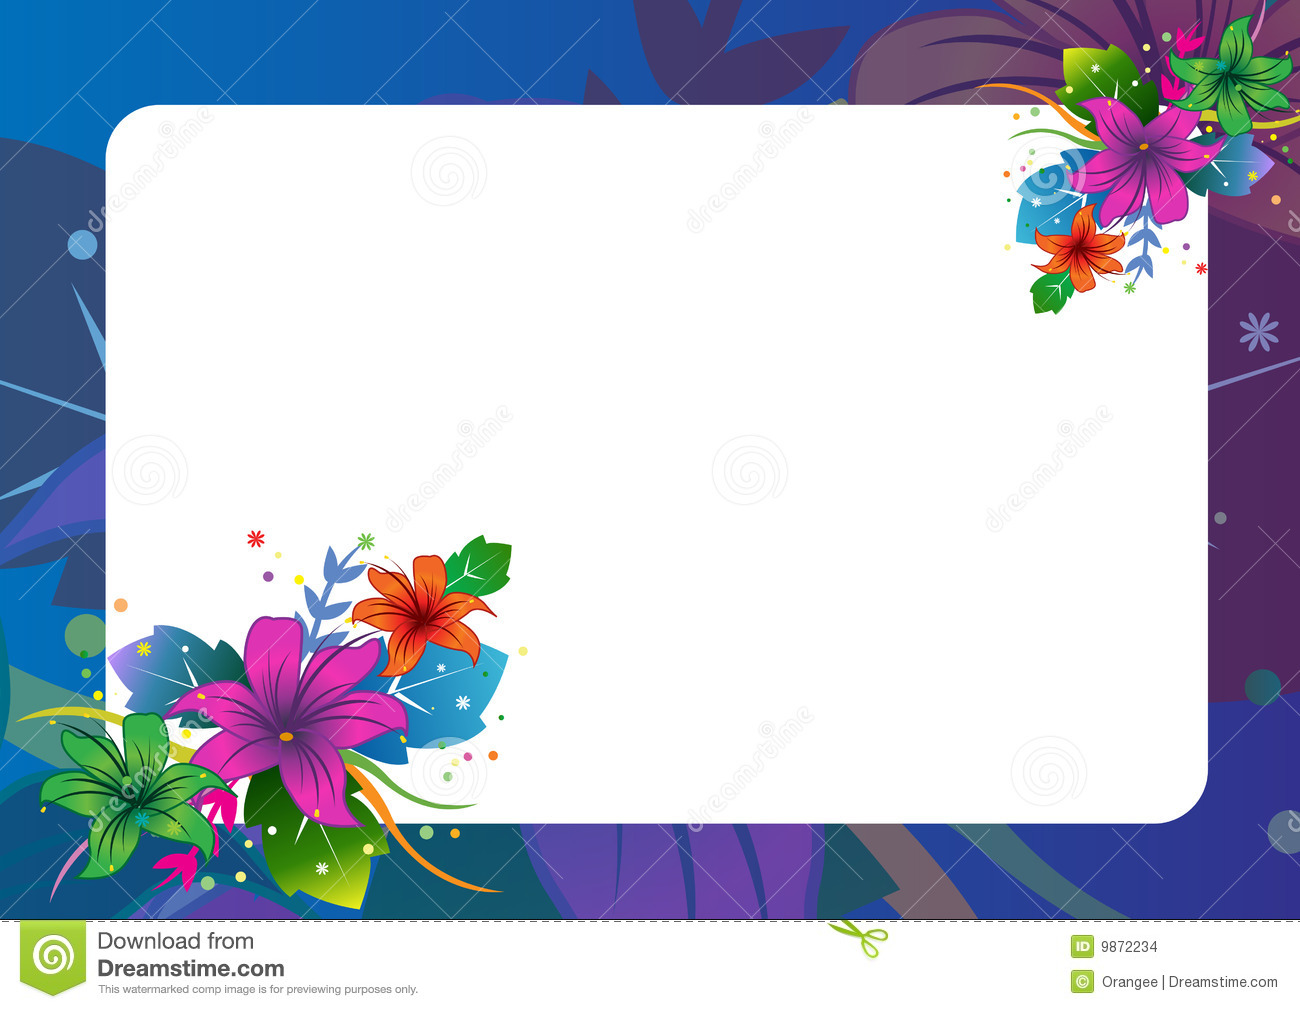 Floral Border Stock Images - Image: 9872234